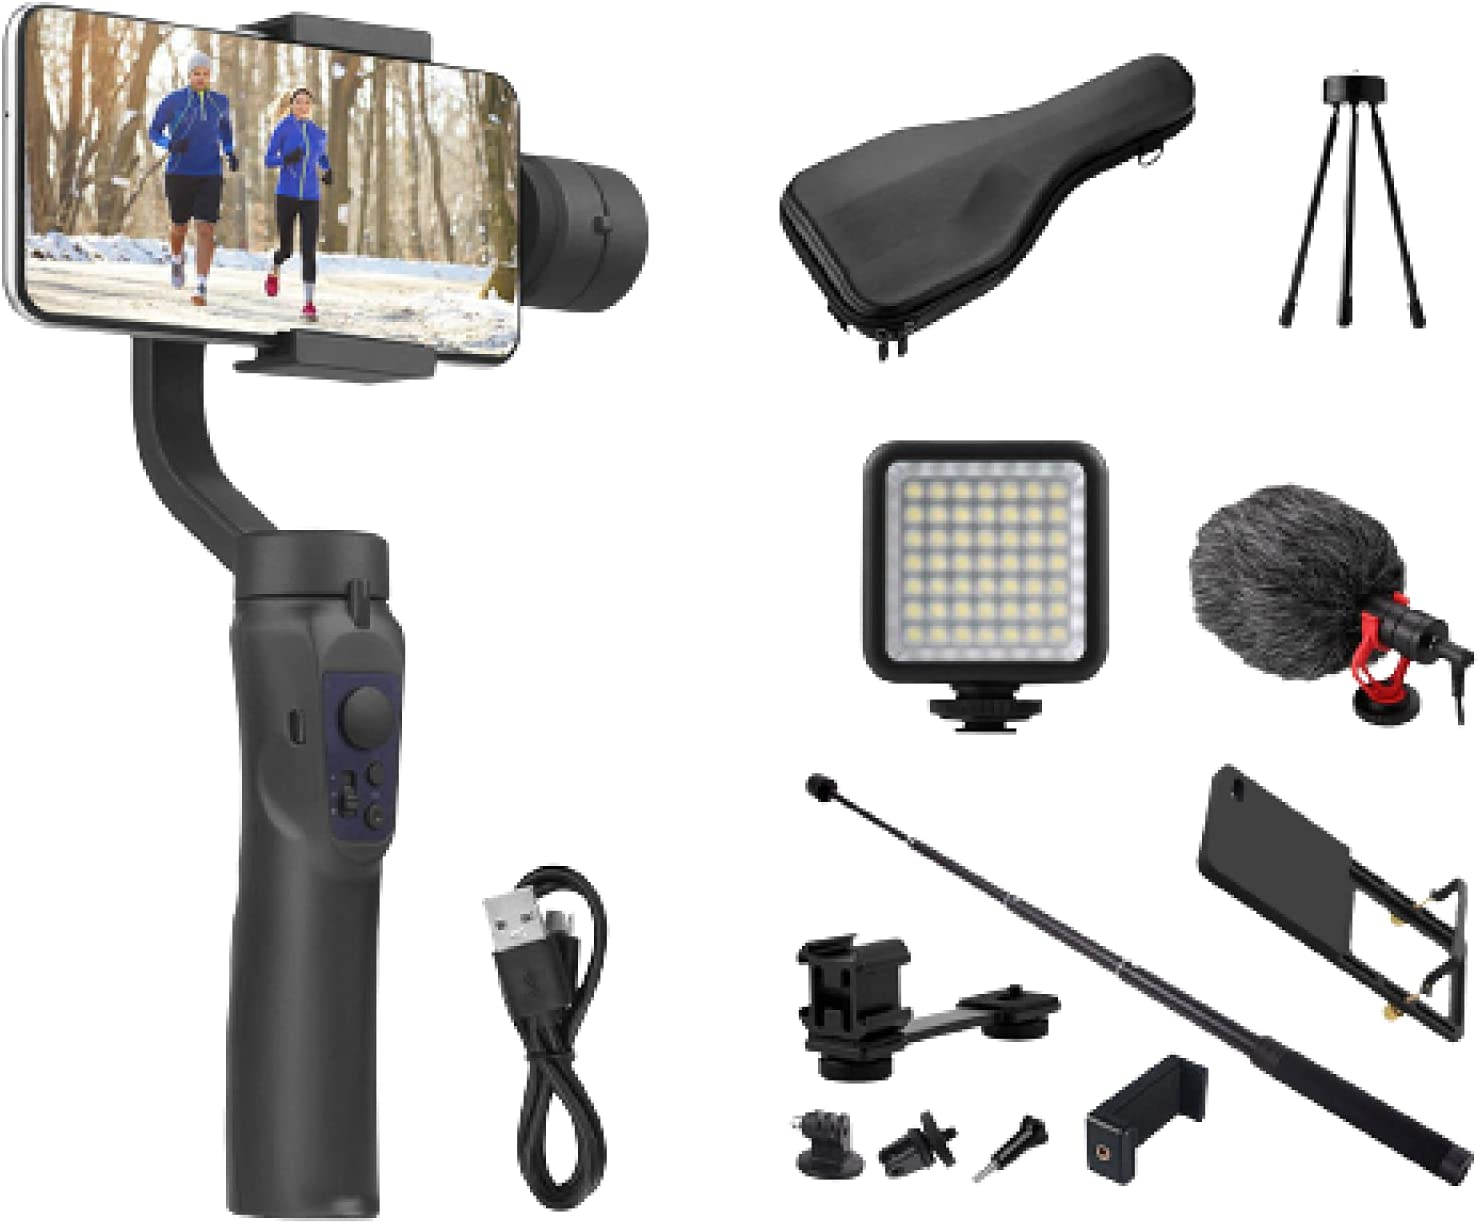 3 Axis Gimbal Handheld stabilizer Cellphone OFFicial site Video Smartph Record Courier shipping free